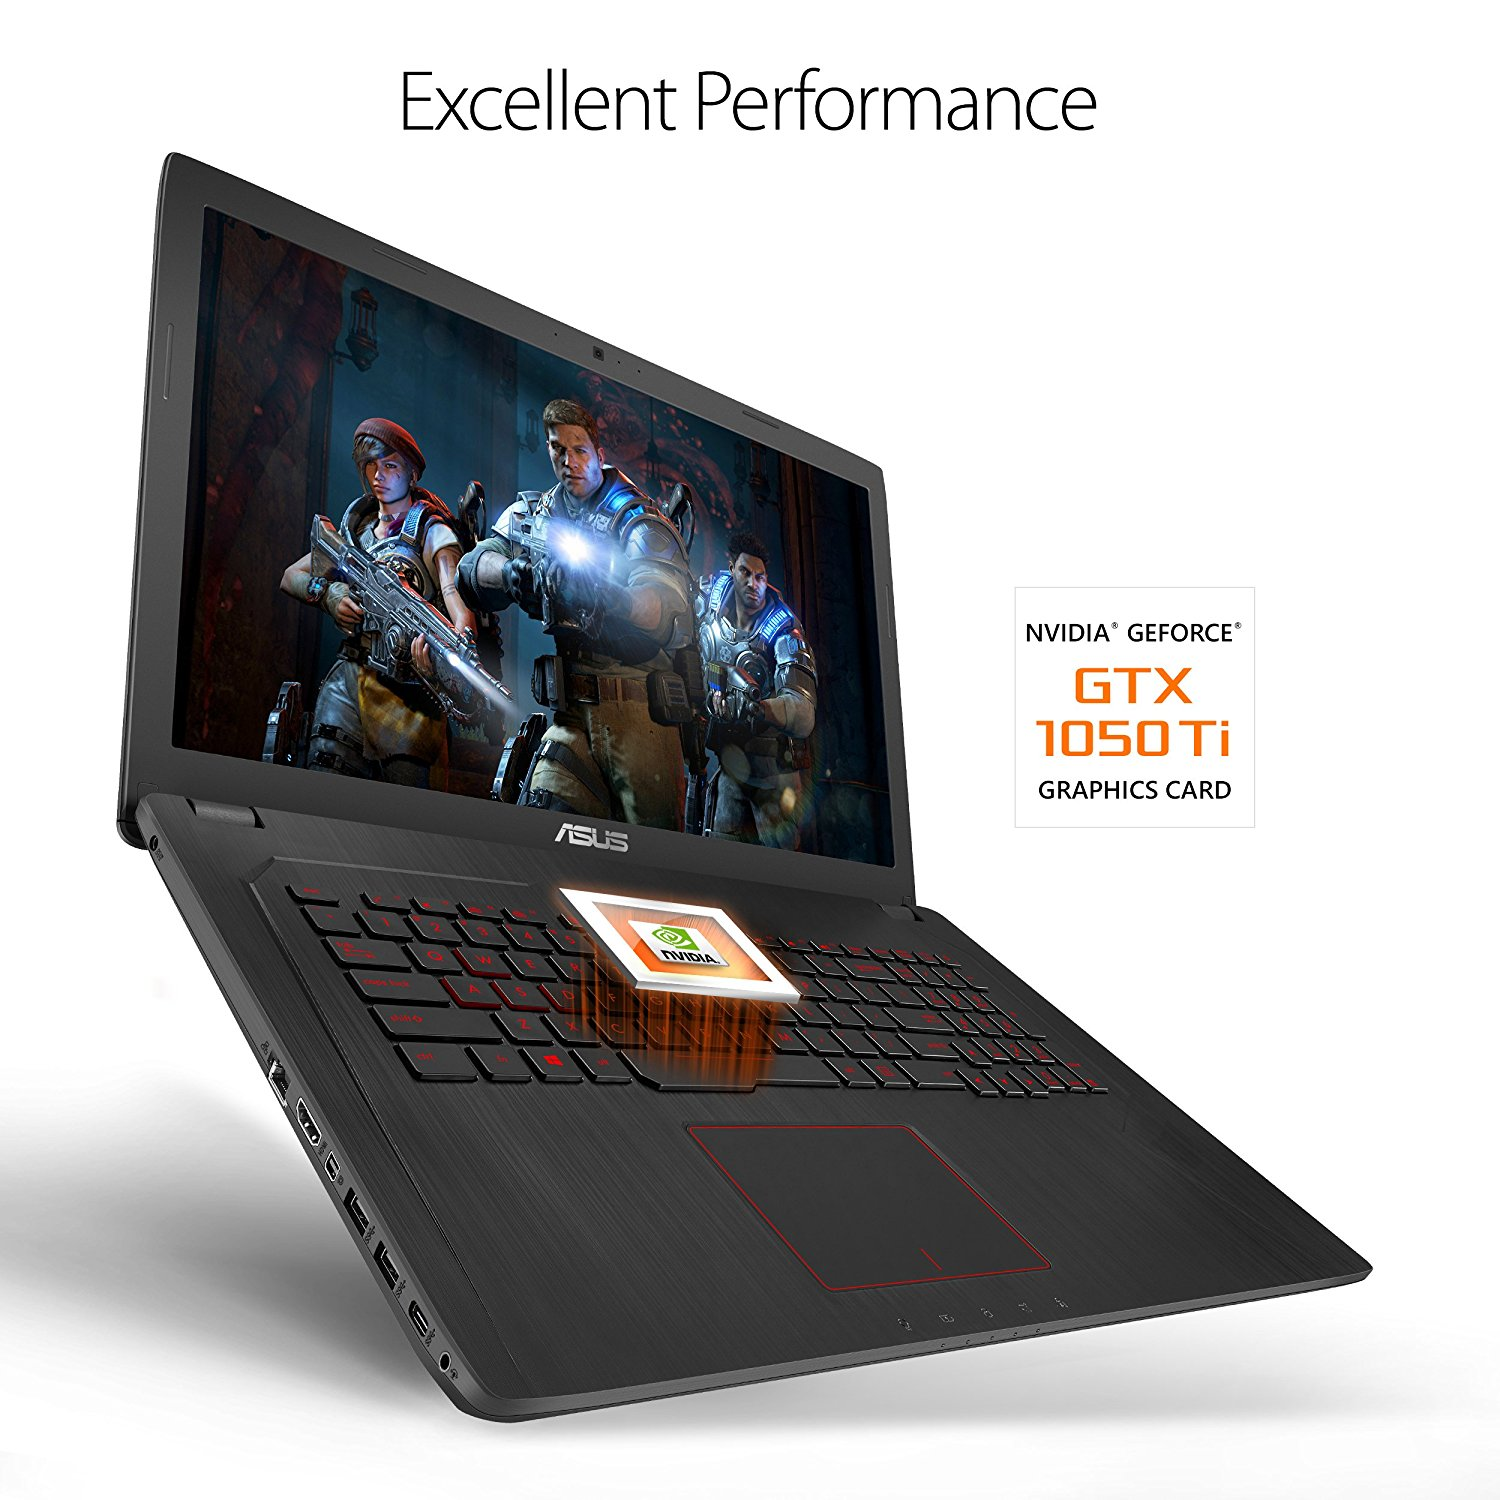 Deal Save Up To 35 On Select Pc Gaming Laptops Components And